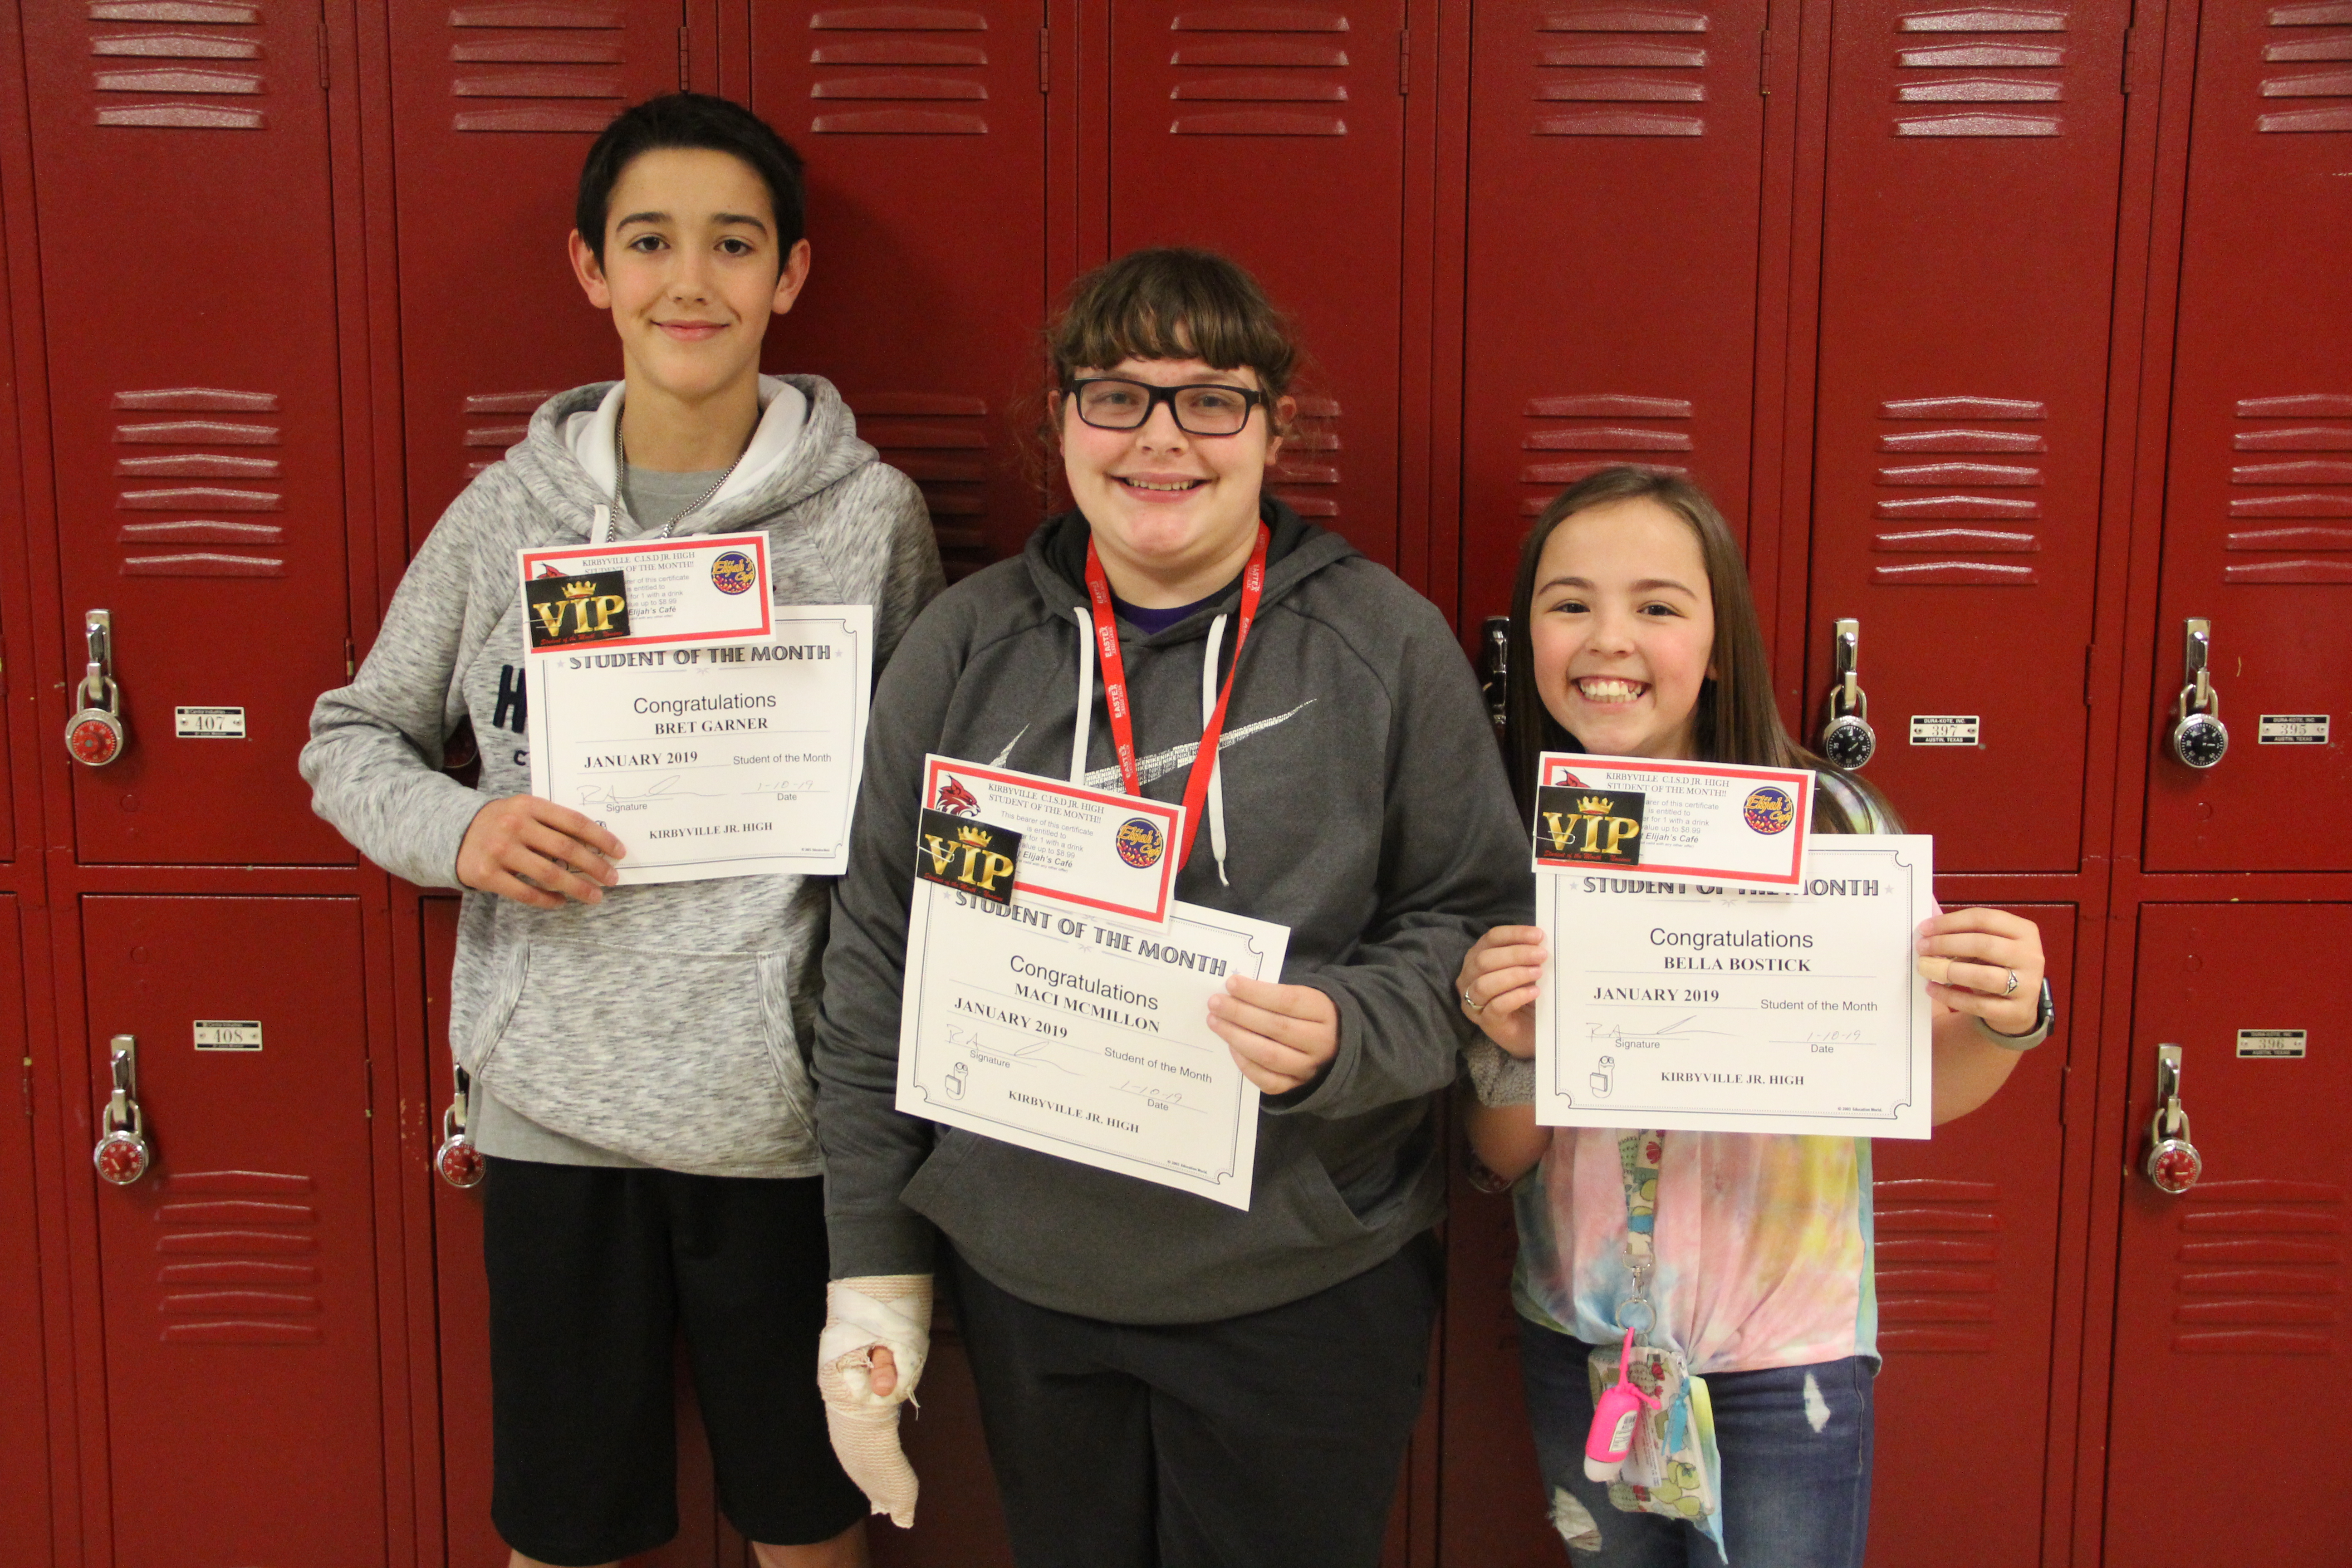 Congratulations to our January Students of the Month! Good job Maci McMillon 8th grade, Brent Garner 7th grade and Bella Bostick 6th grade.